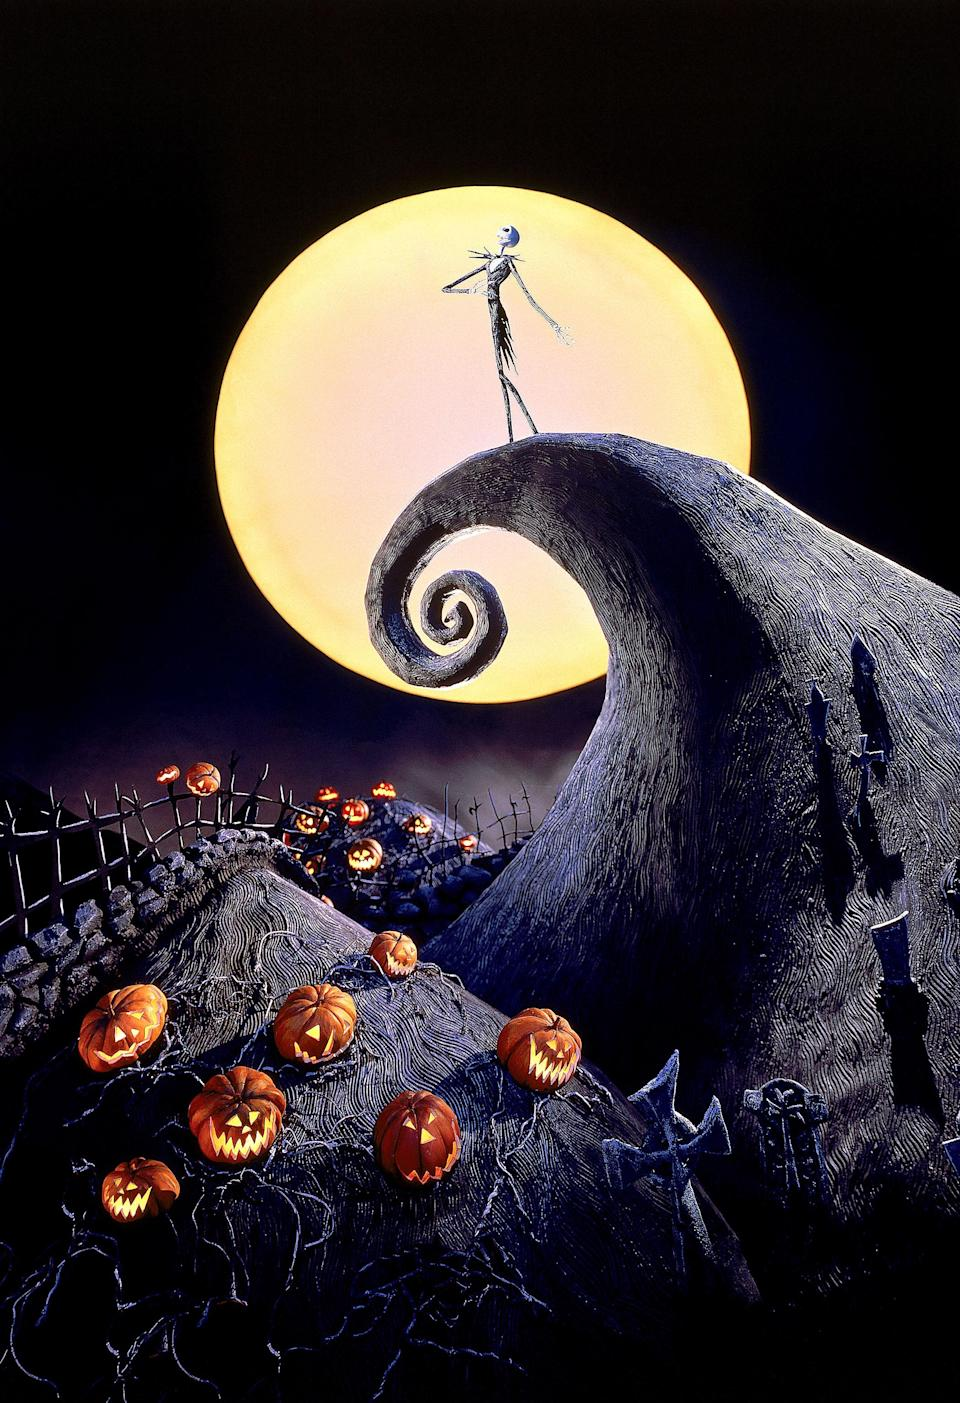 """<p>Who says our favorite ghouls and goblins don't deserve a little holiday cheer. In this Tim Burton classic, Jack, dubbed the Pumpkin King because of his terrifying looks, gets bored of Halloween festivities, discovers Christmas, and decides to take it over. A crossover we return to year after year.</p> <p><a href=""""https://disneyplus.bn5x.net/VryLJ"""" rel=""""nofollow noopener"""" target=""""_blank"""" data-ylk=""""slk:Available on Disney+"""" class=""""link rapid-noclick-resp""""><em>Available on Disney+</em></a></p>"""